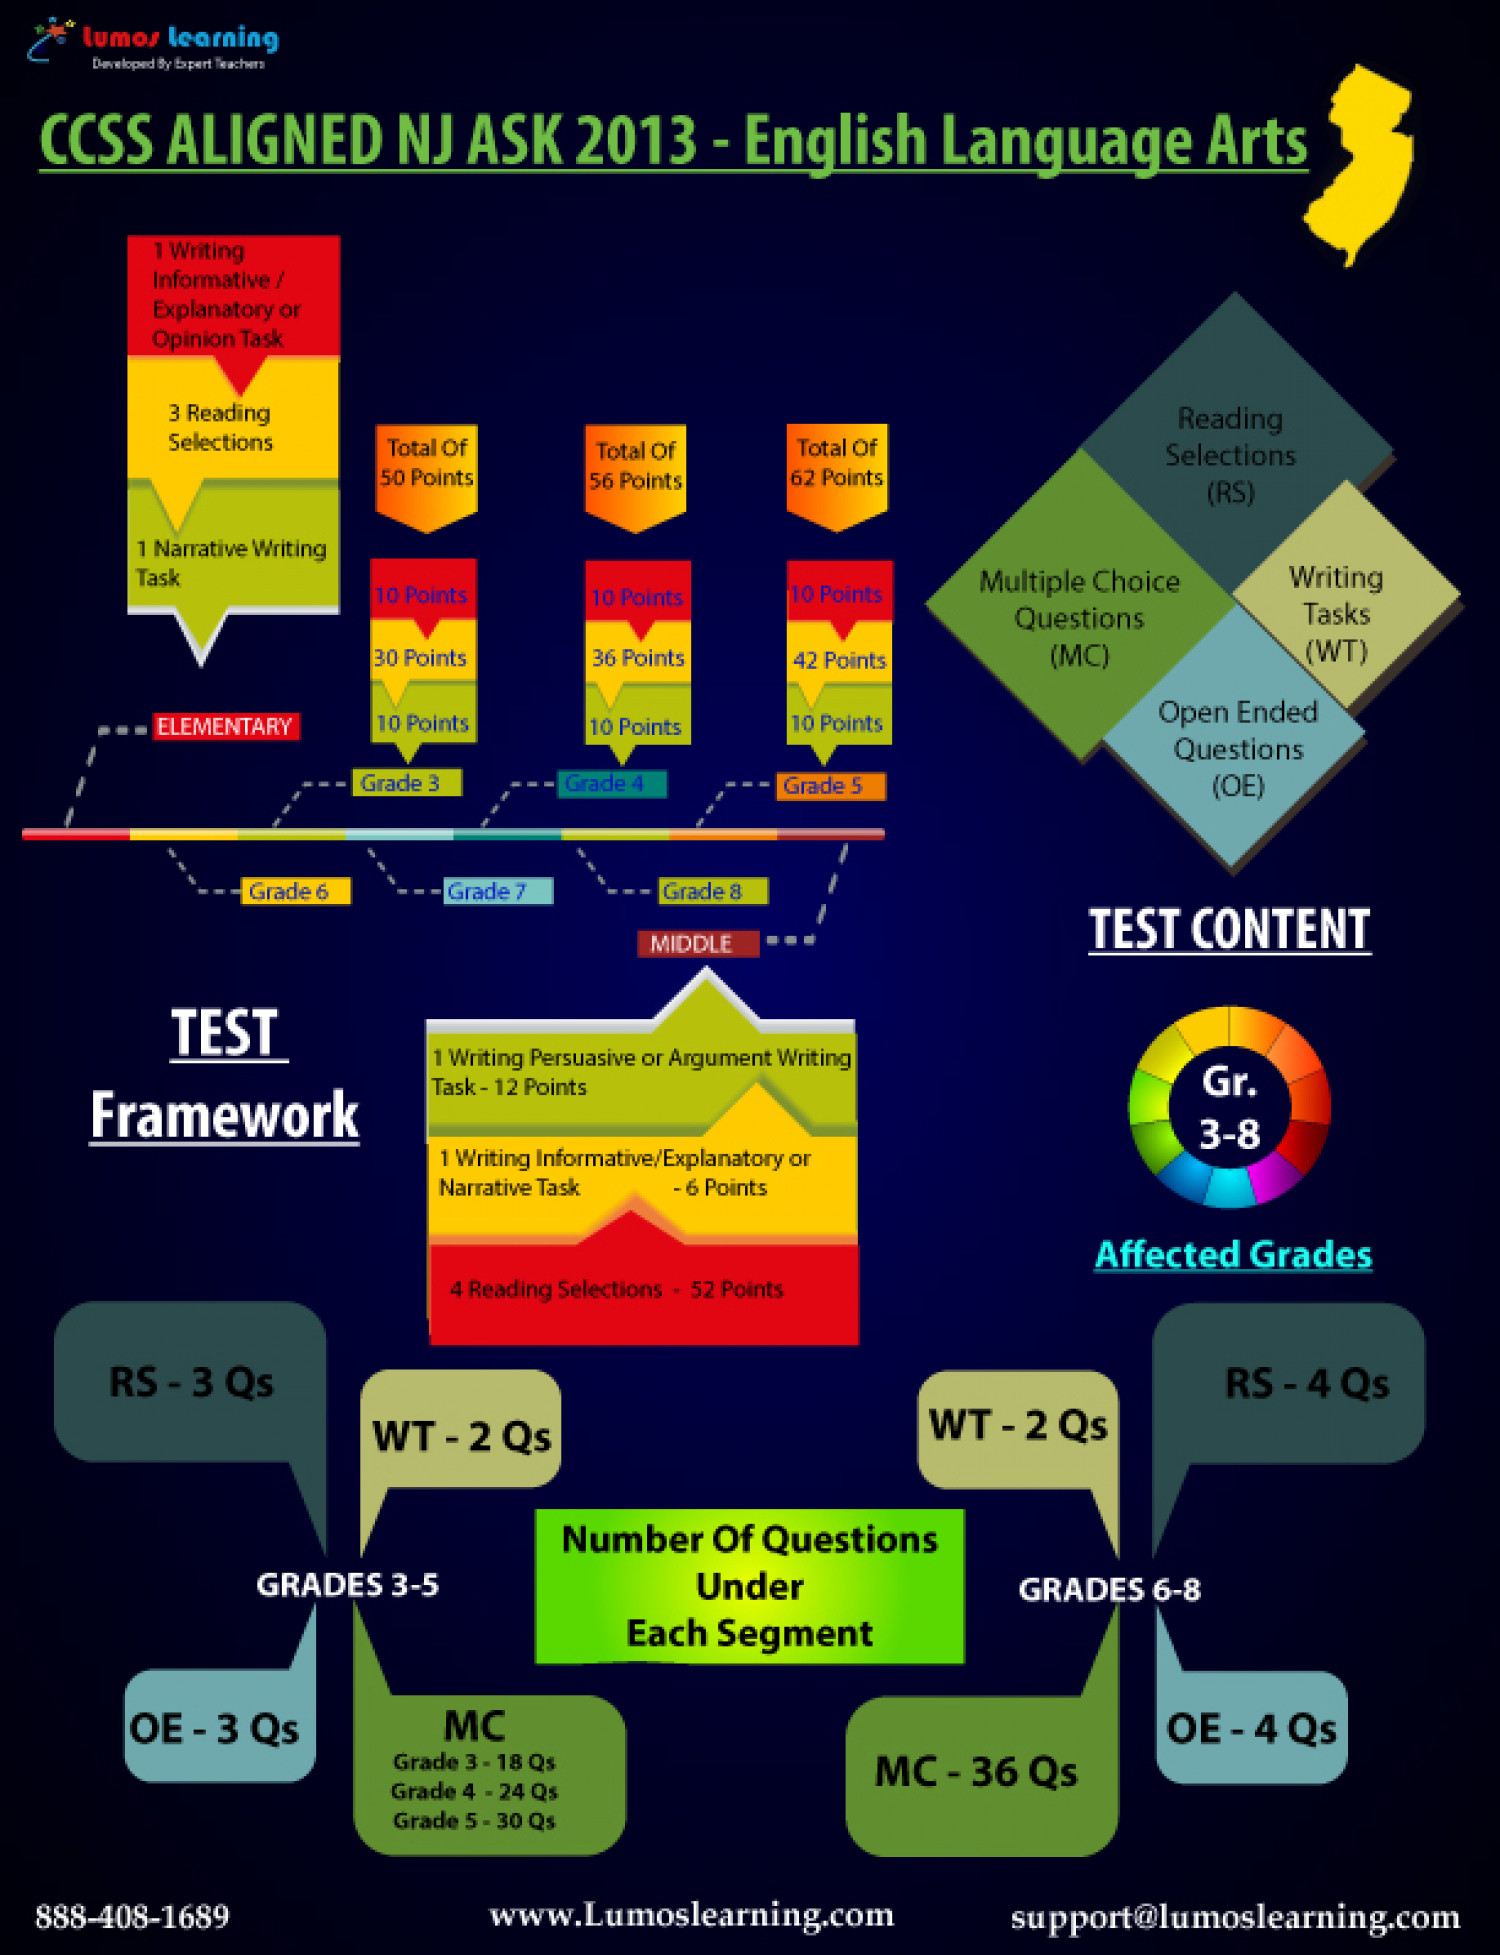 CCSS Aligned NJ ASK ELA - Test Design Overview Infographic